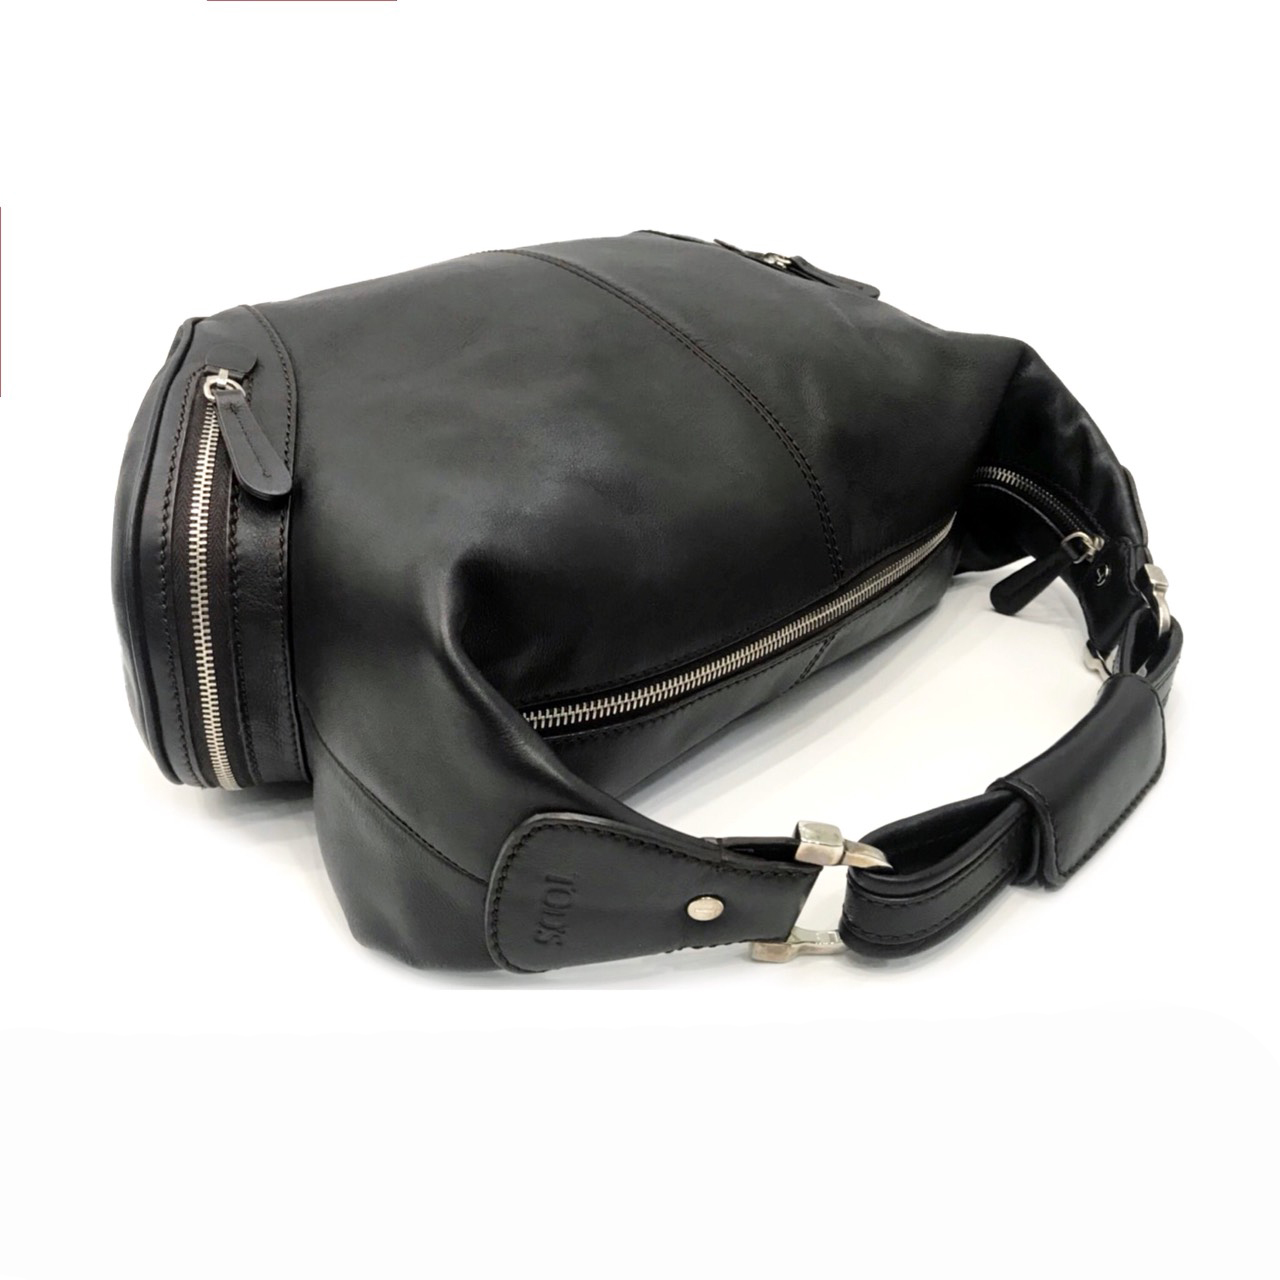 Used TOD'S Charlotto Shoulder Bag in Black Leather SHW